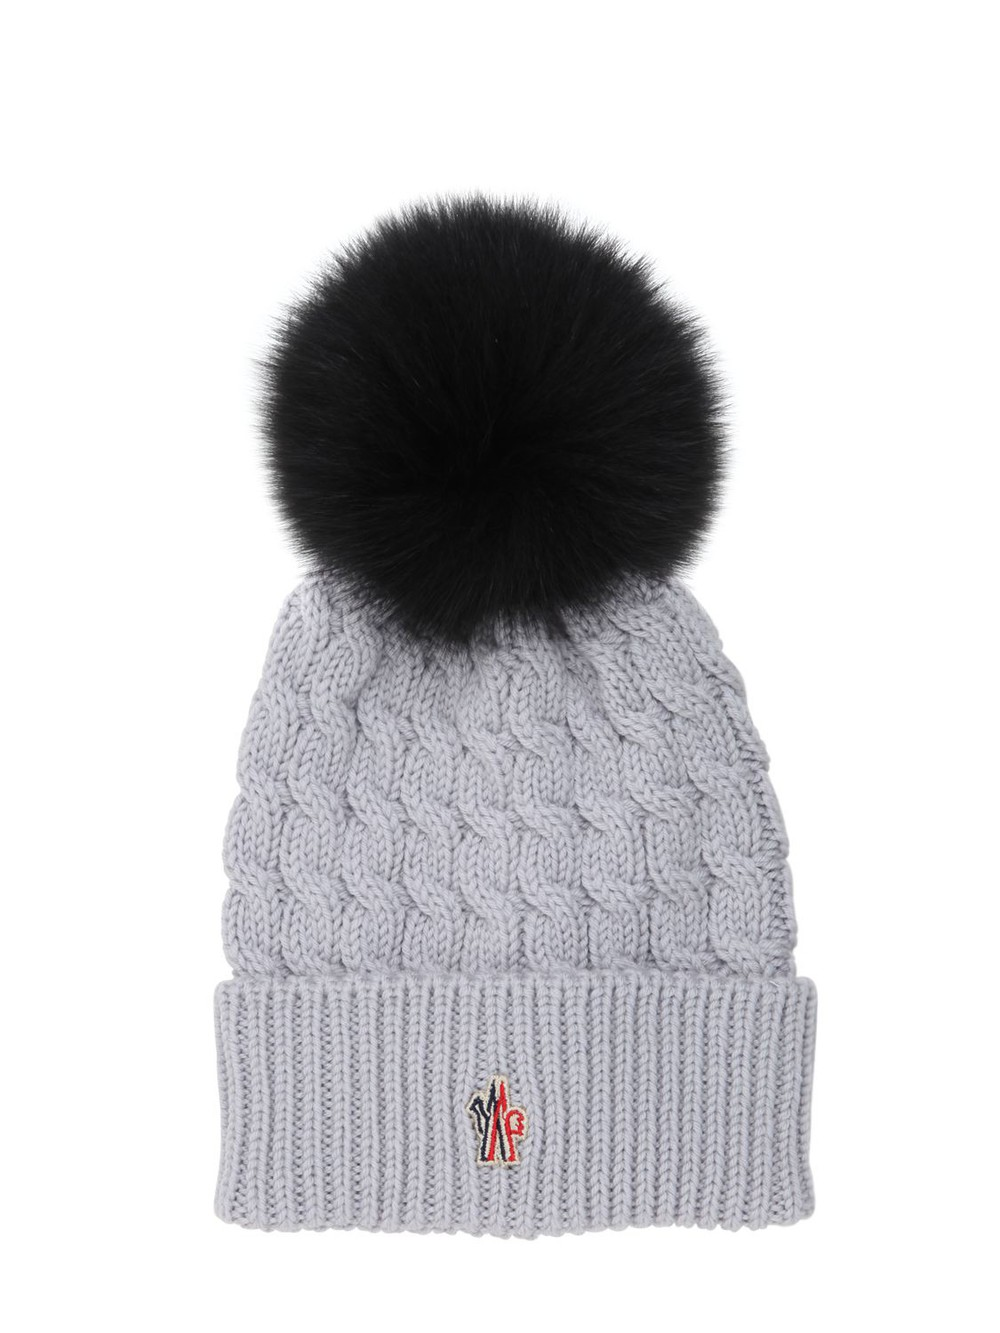 8deb1d0a251 MONCLER GRENOBLE Wool Cable Knit Hat W  Fox Fur Pom Pom in grey